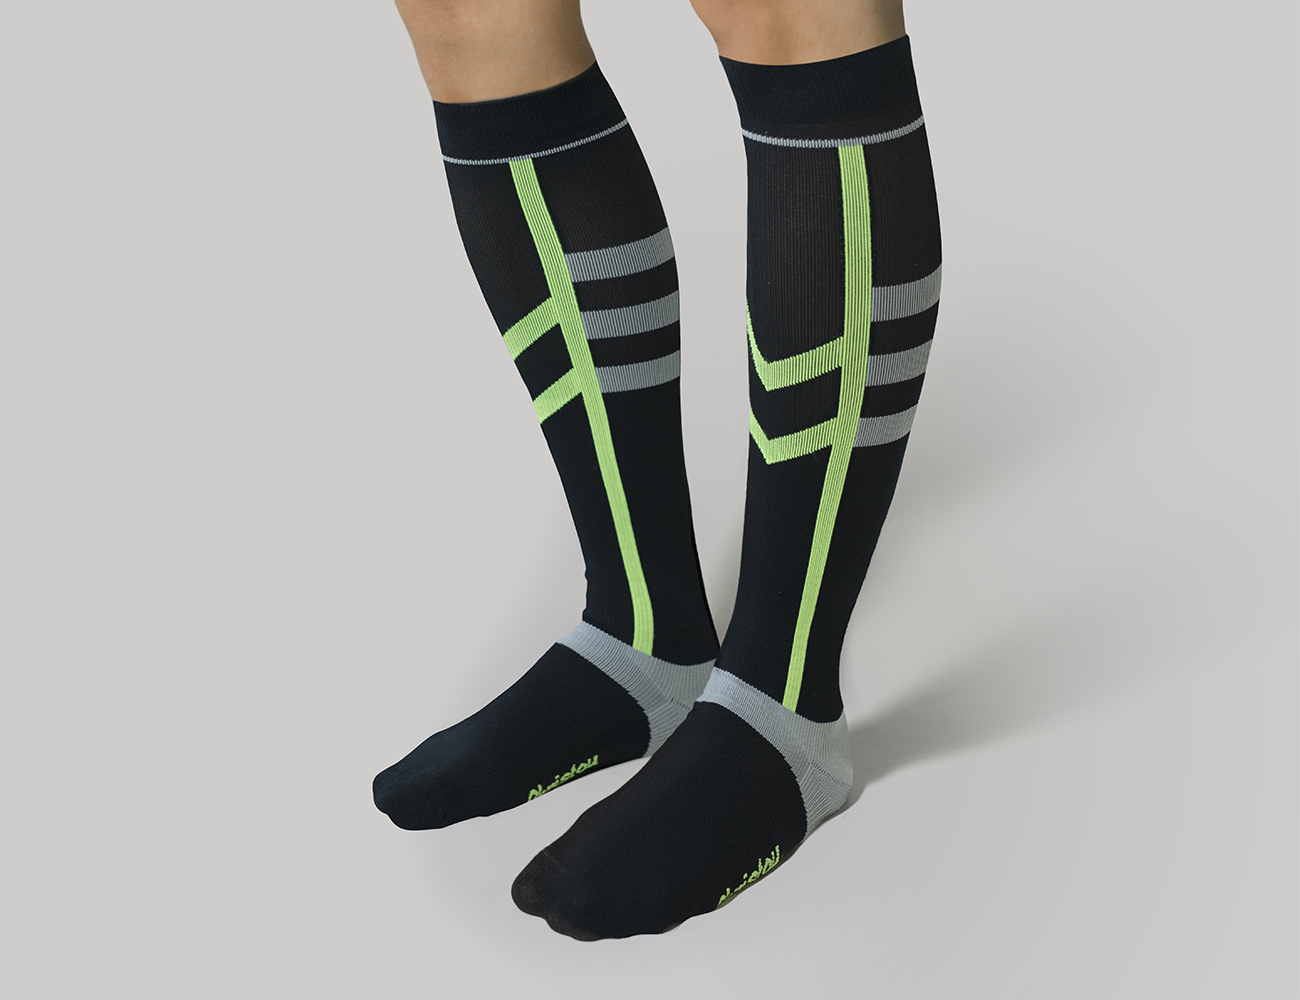 Graduated Compression Knee-High Sports Socks